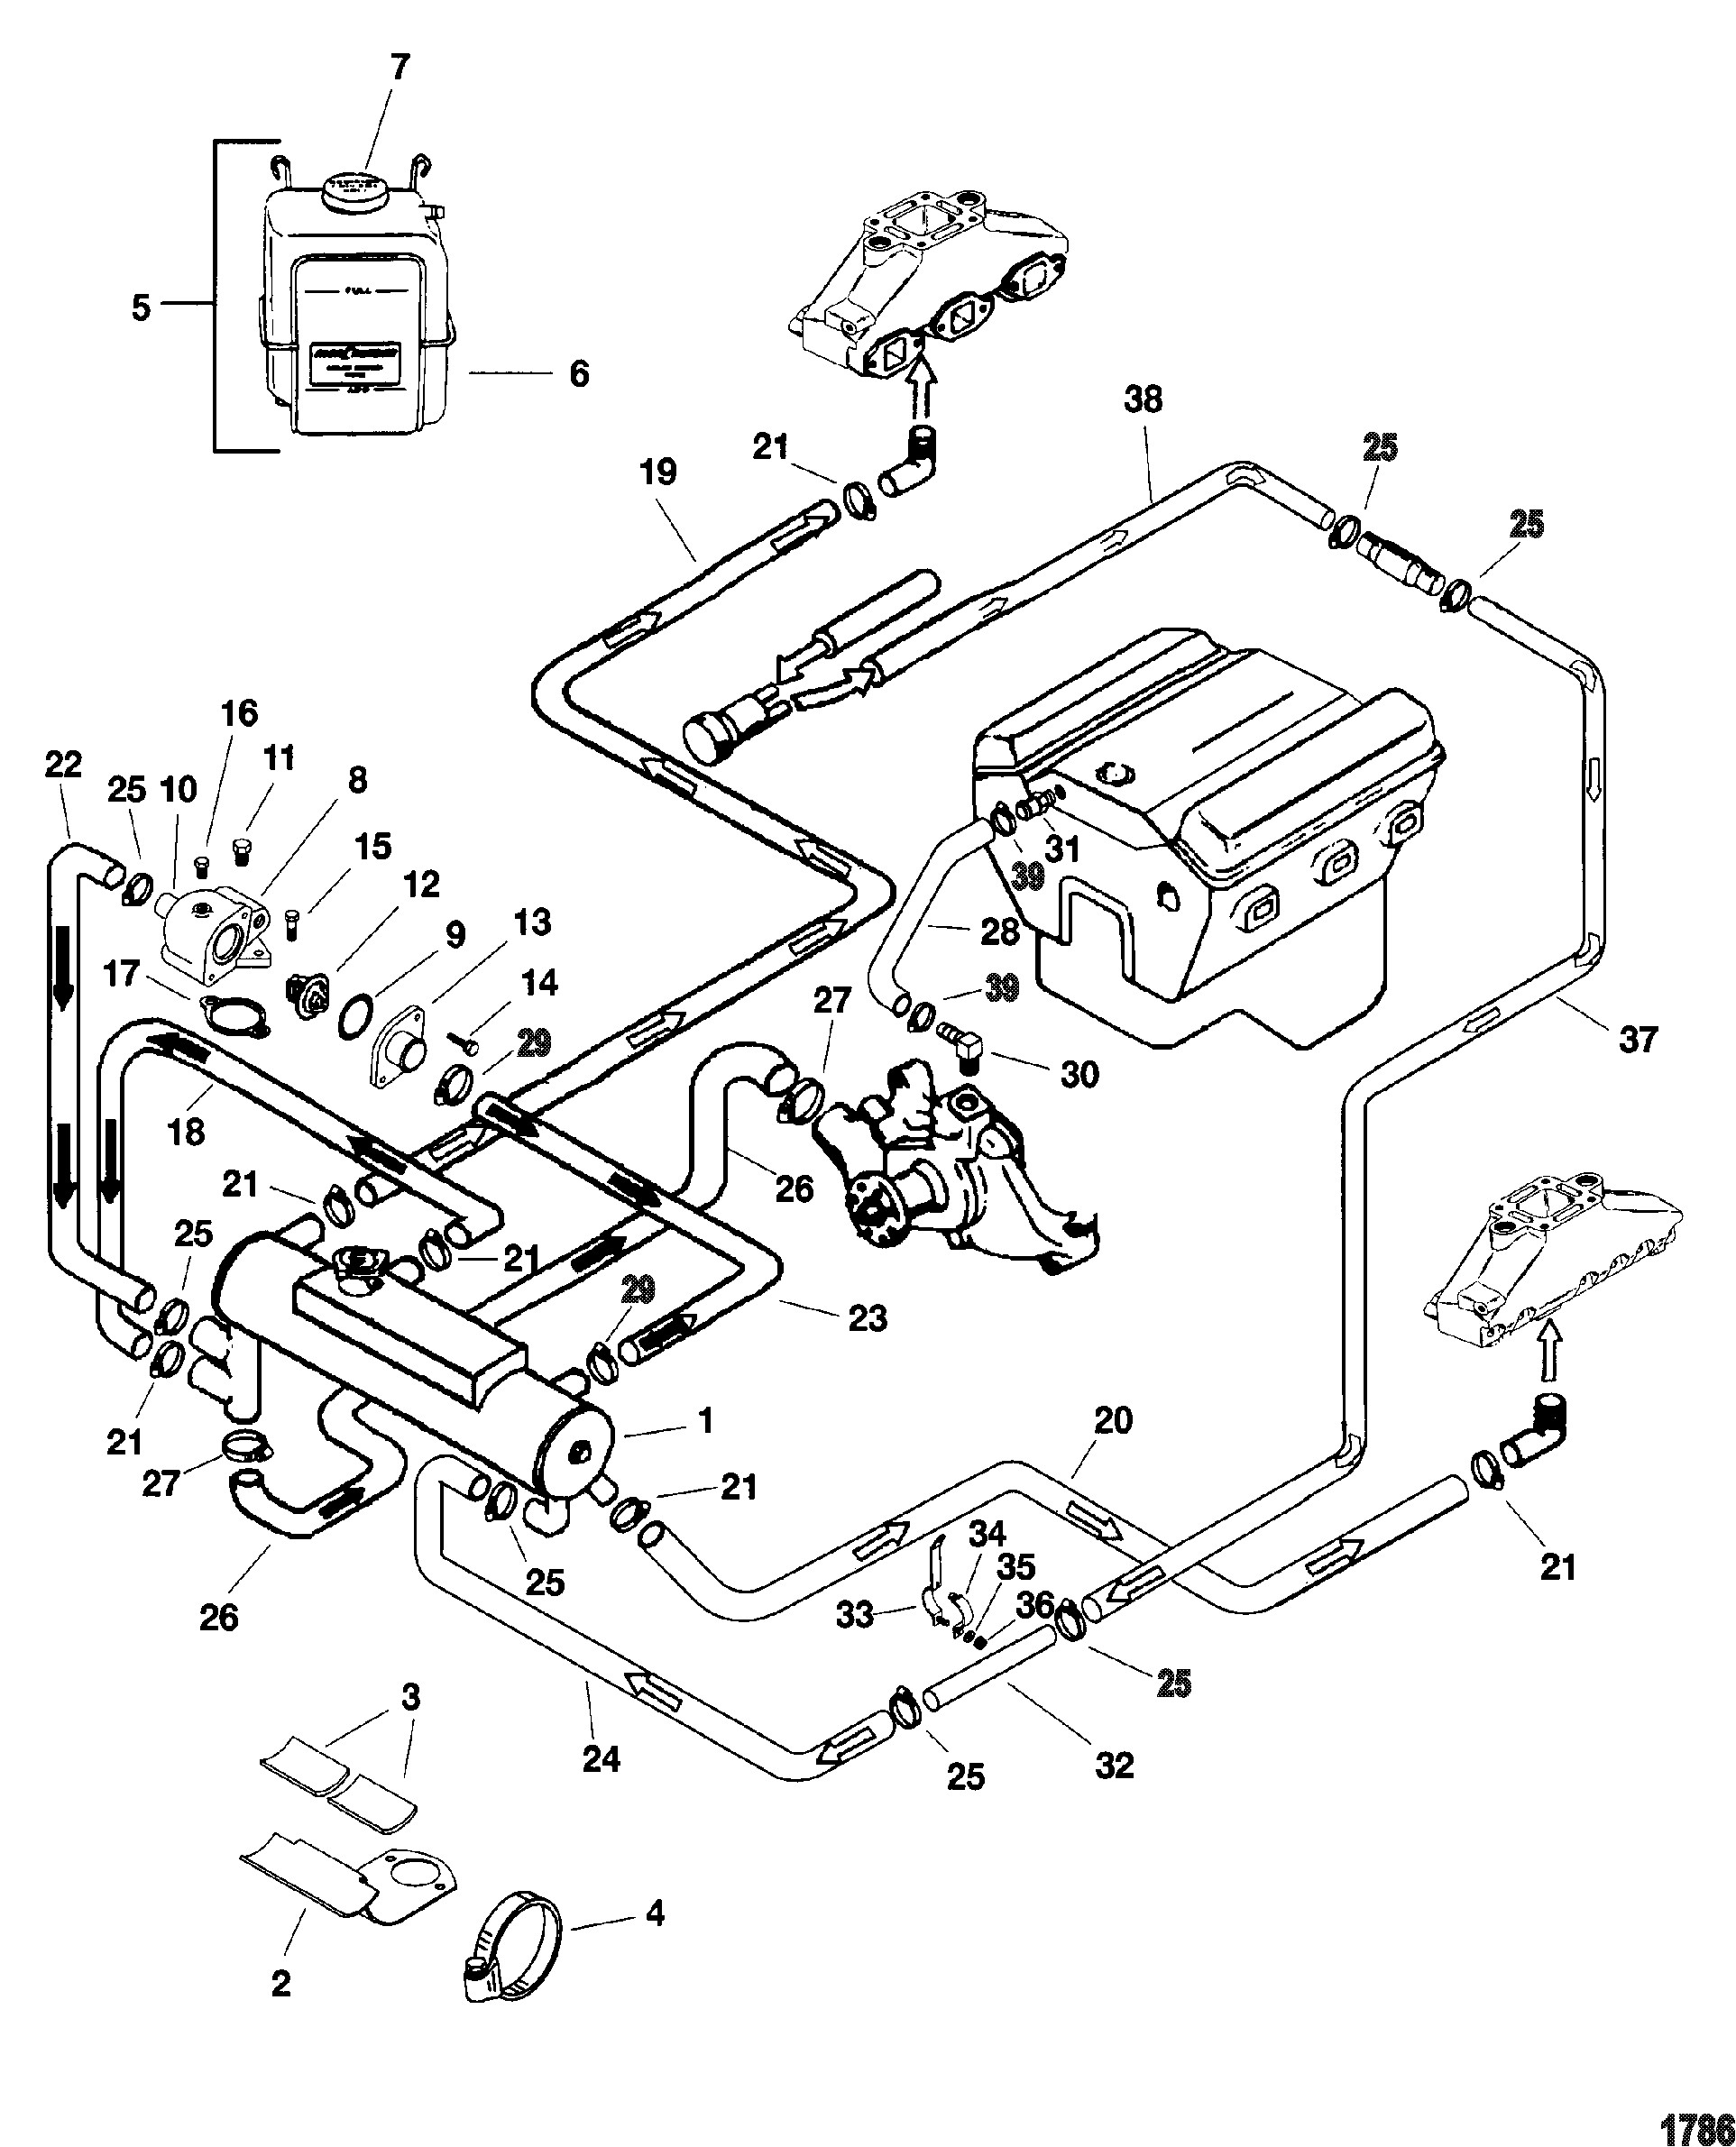 hight resolution of suzuki v6 engine diagram wiring diagram toolbox diagram for 2006 suzuki grand vitara 2 7 v6 gas components on diagram